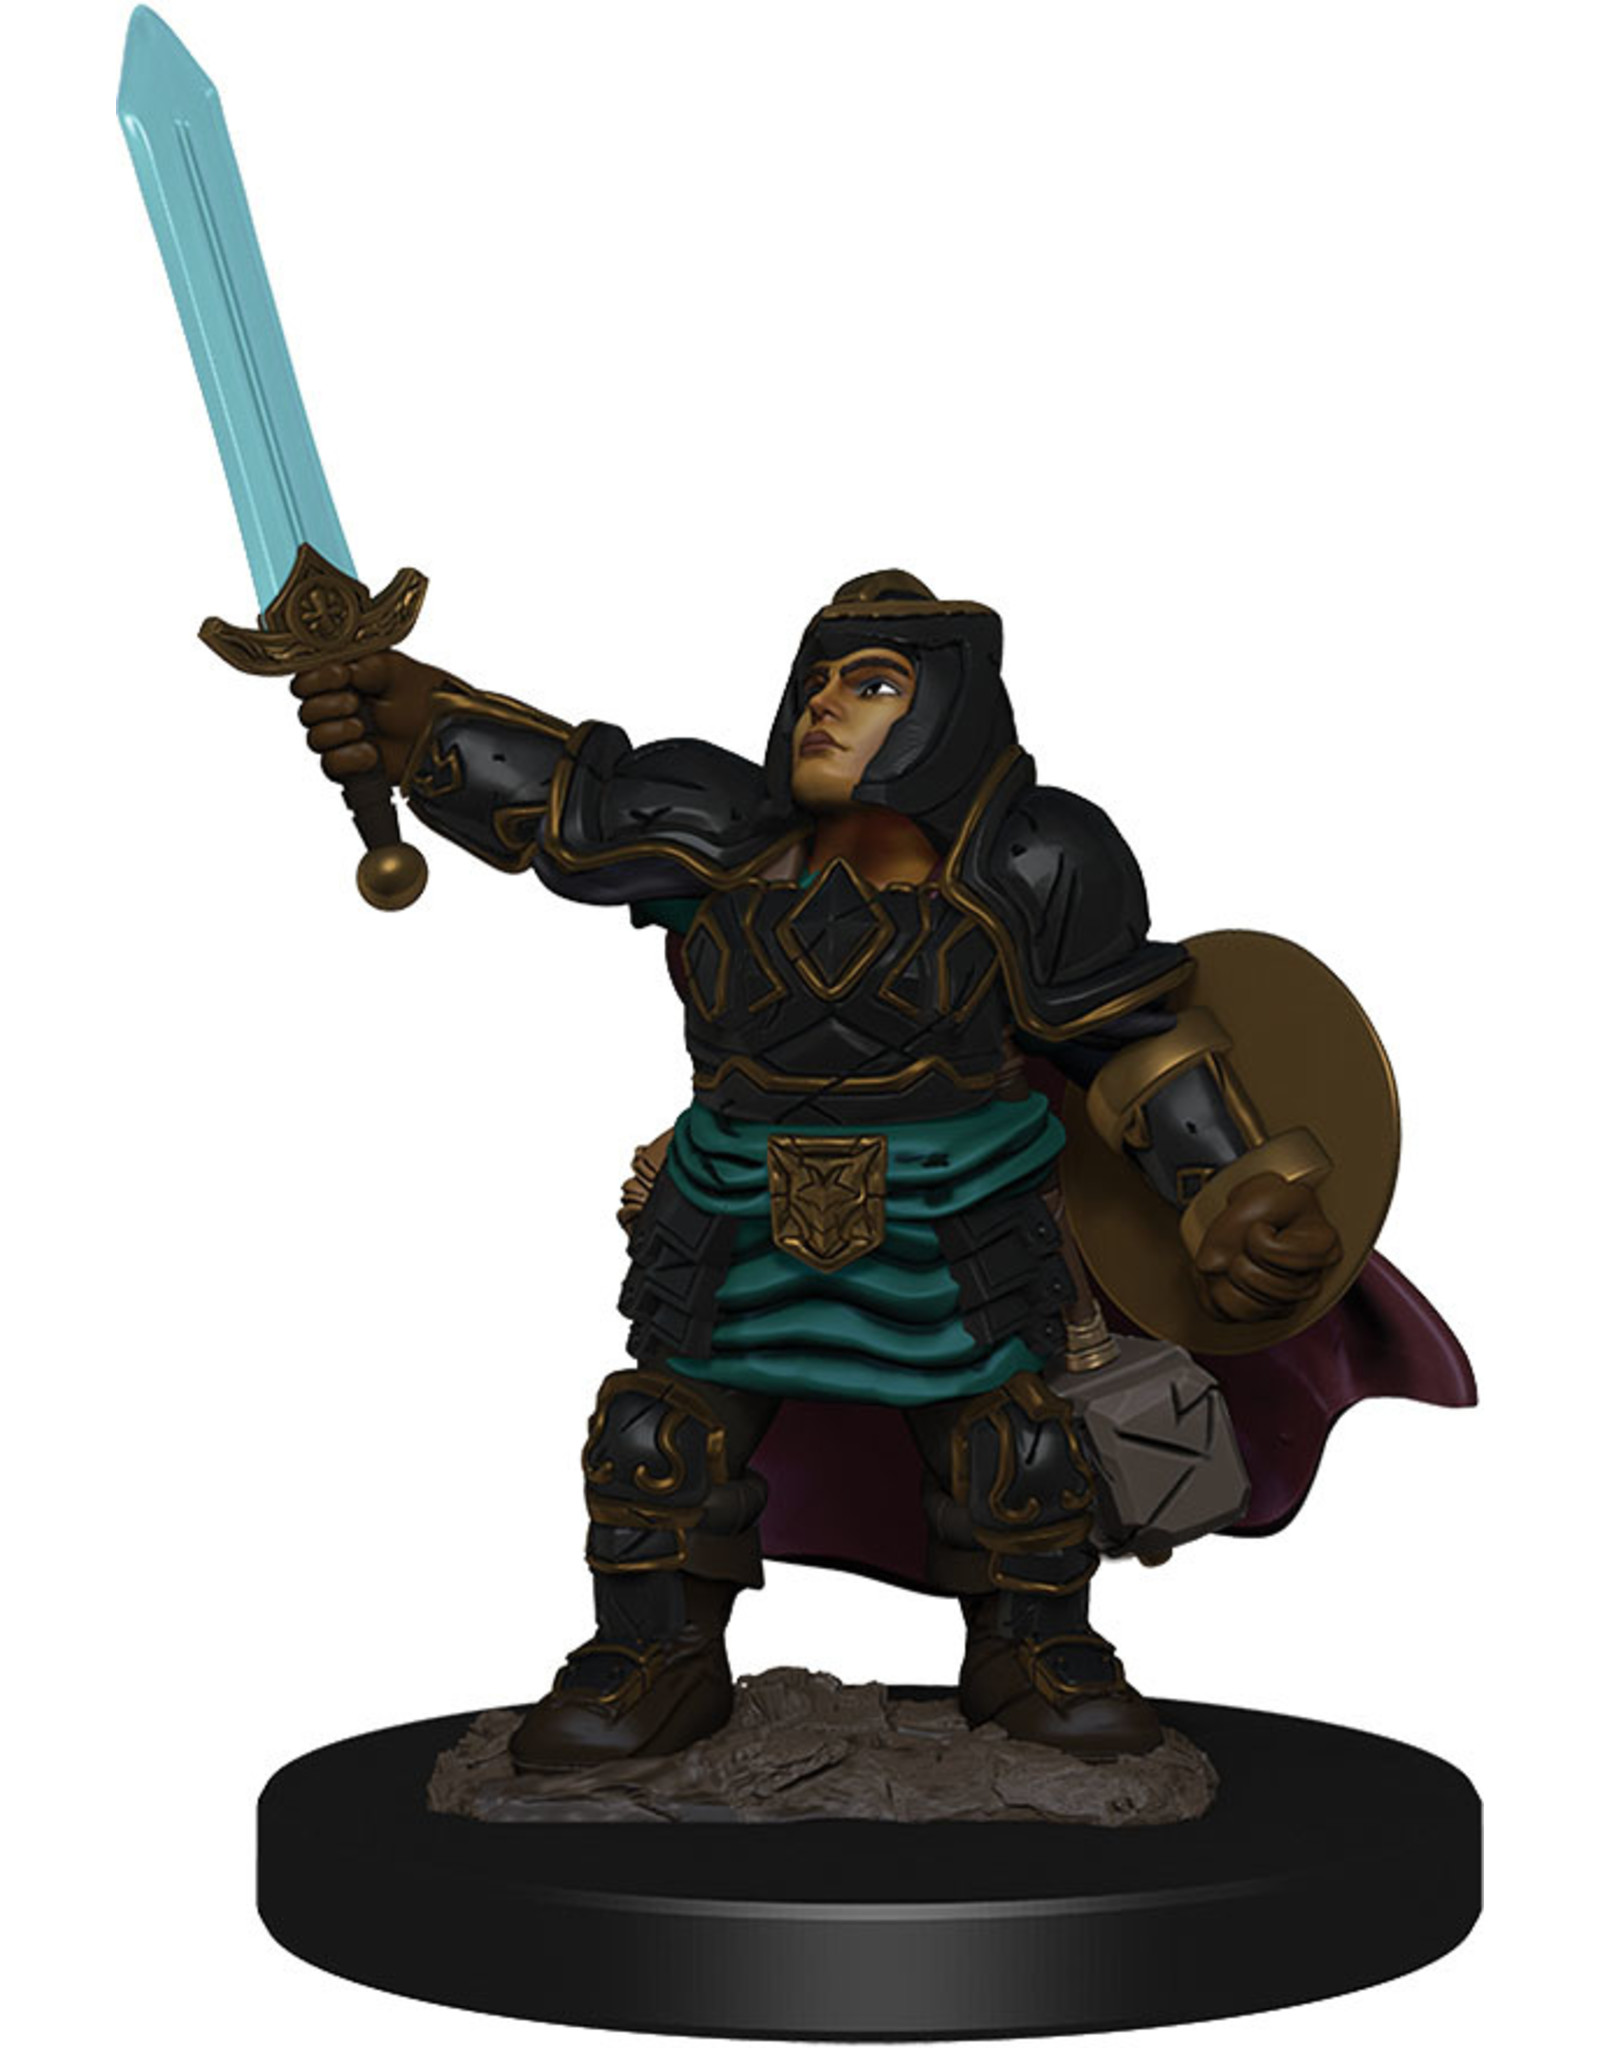 WizKids Dungeons & Dragons Fantasy Miniatures: Icons of the Realms Premium Figures W4 Dwarf Paladin Female